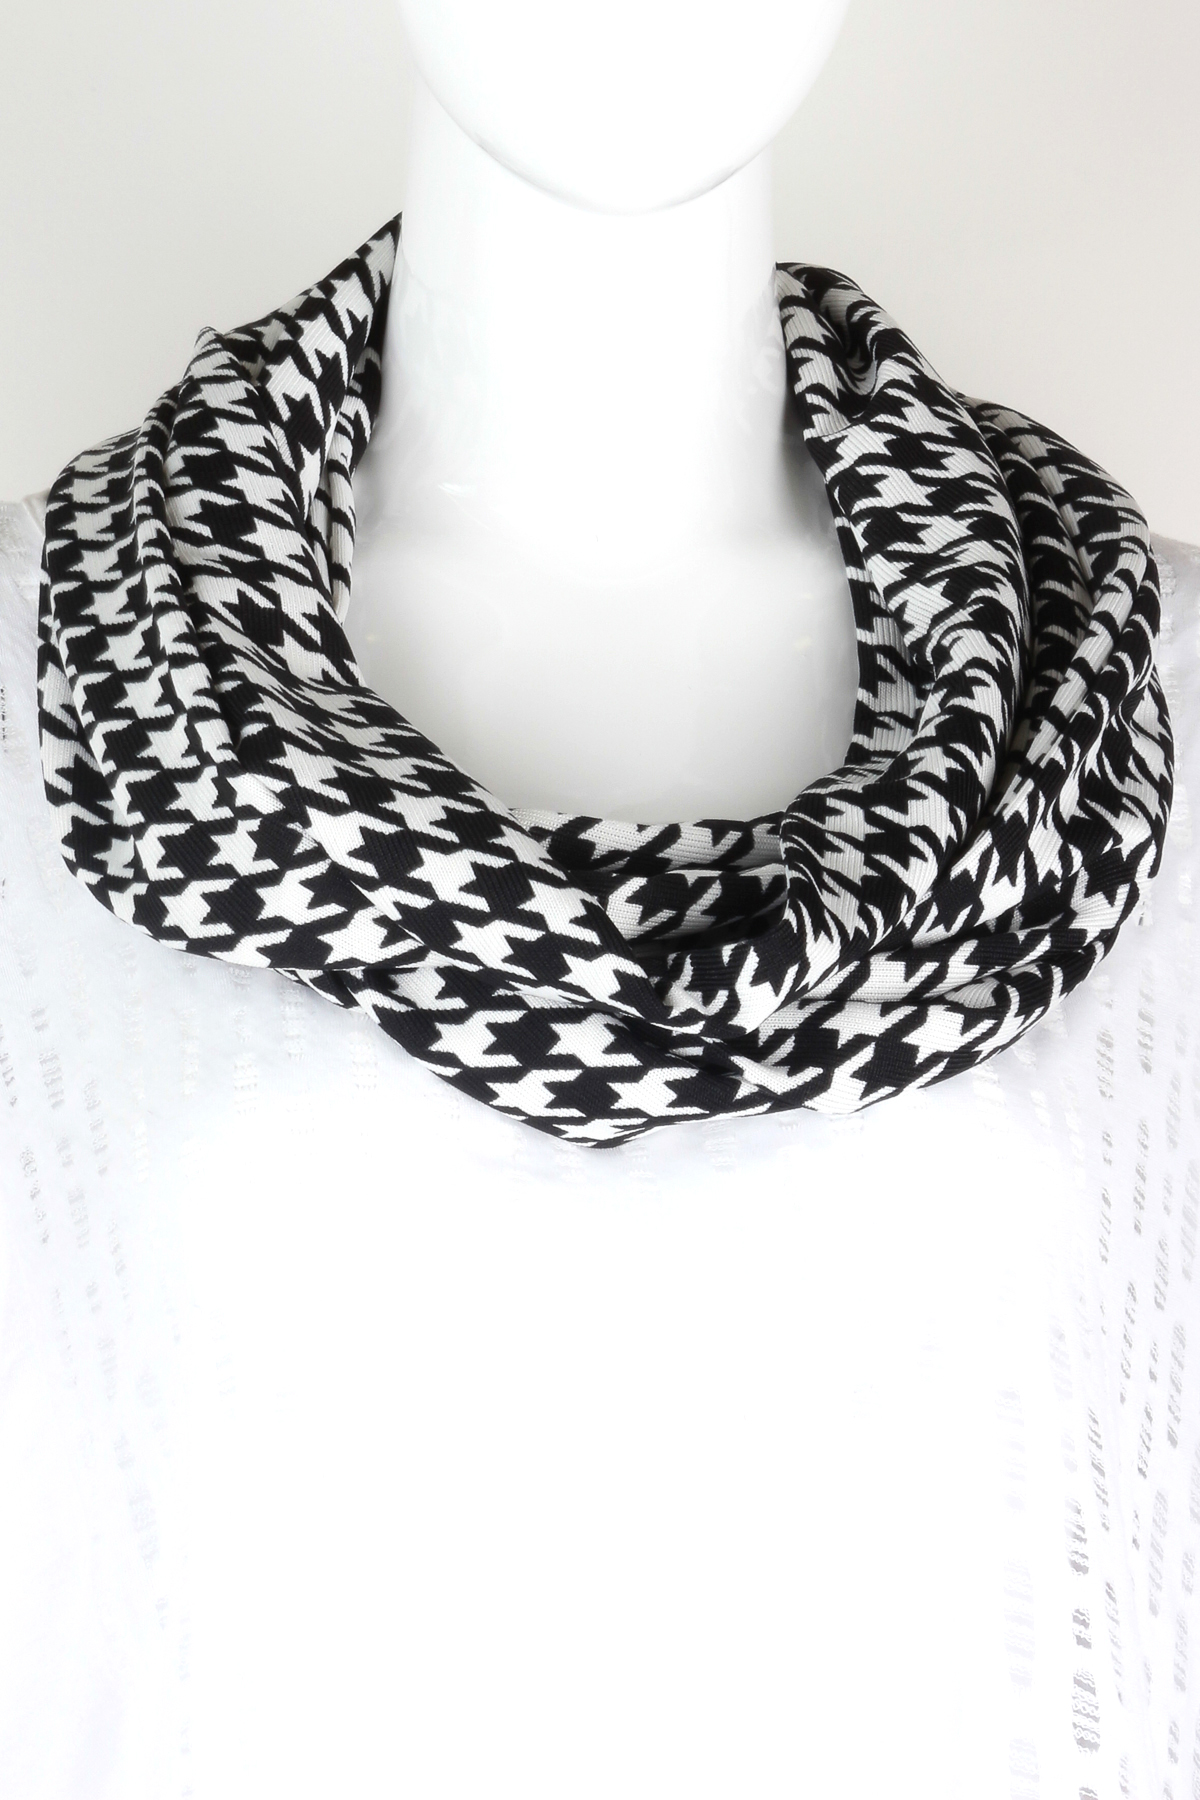 Knitting Pattern For Houndstooth Scarf : Knitted Houndstooth Print Infinity Scarf - Scarves